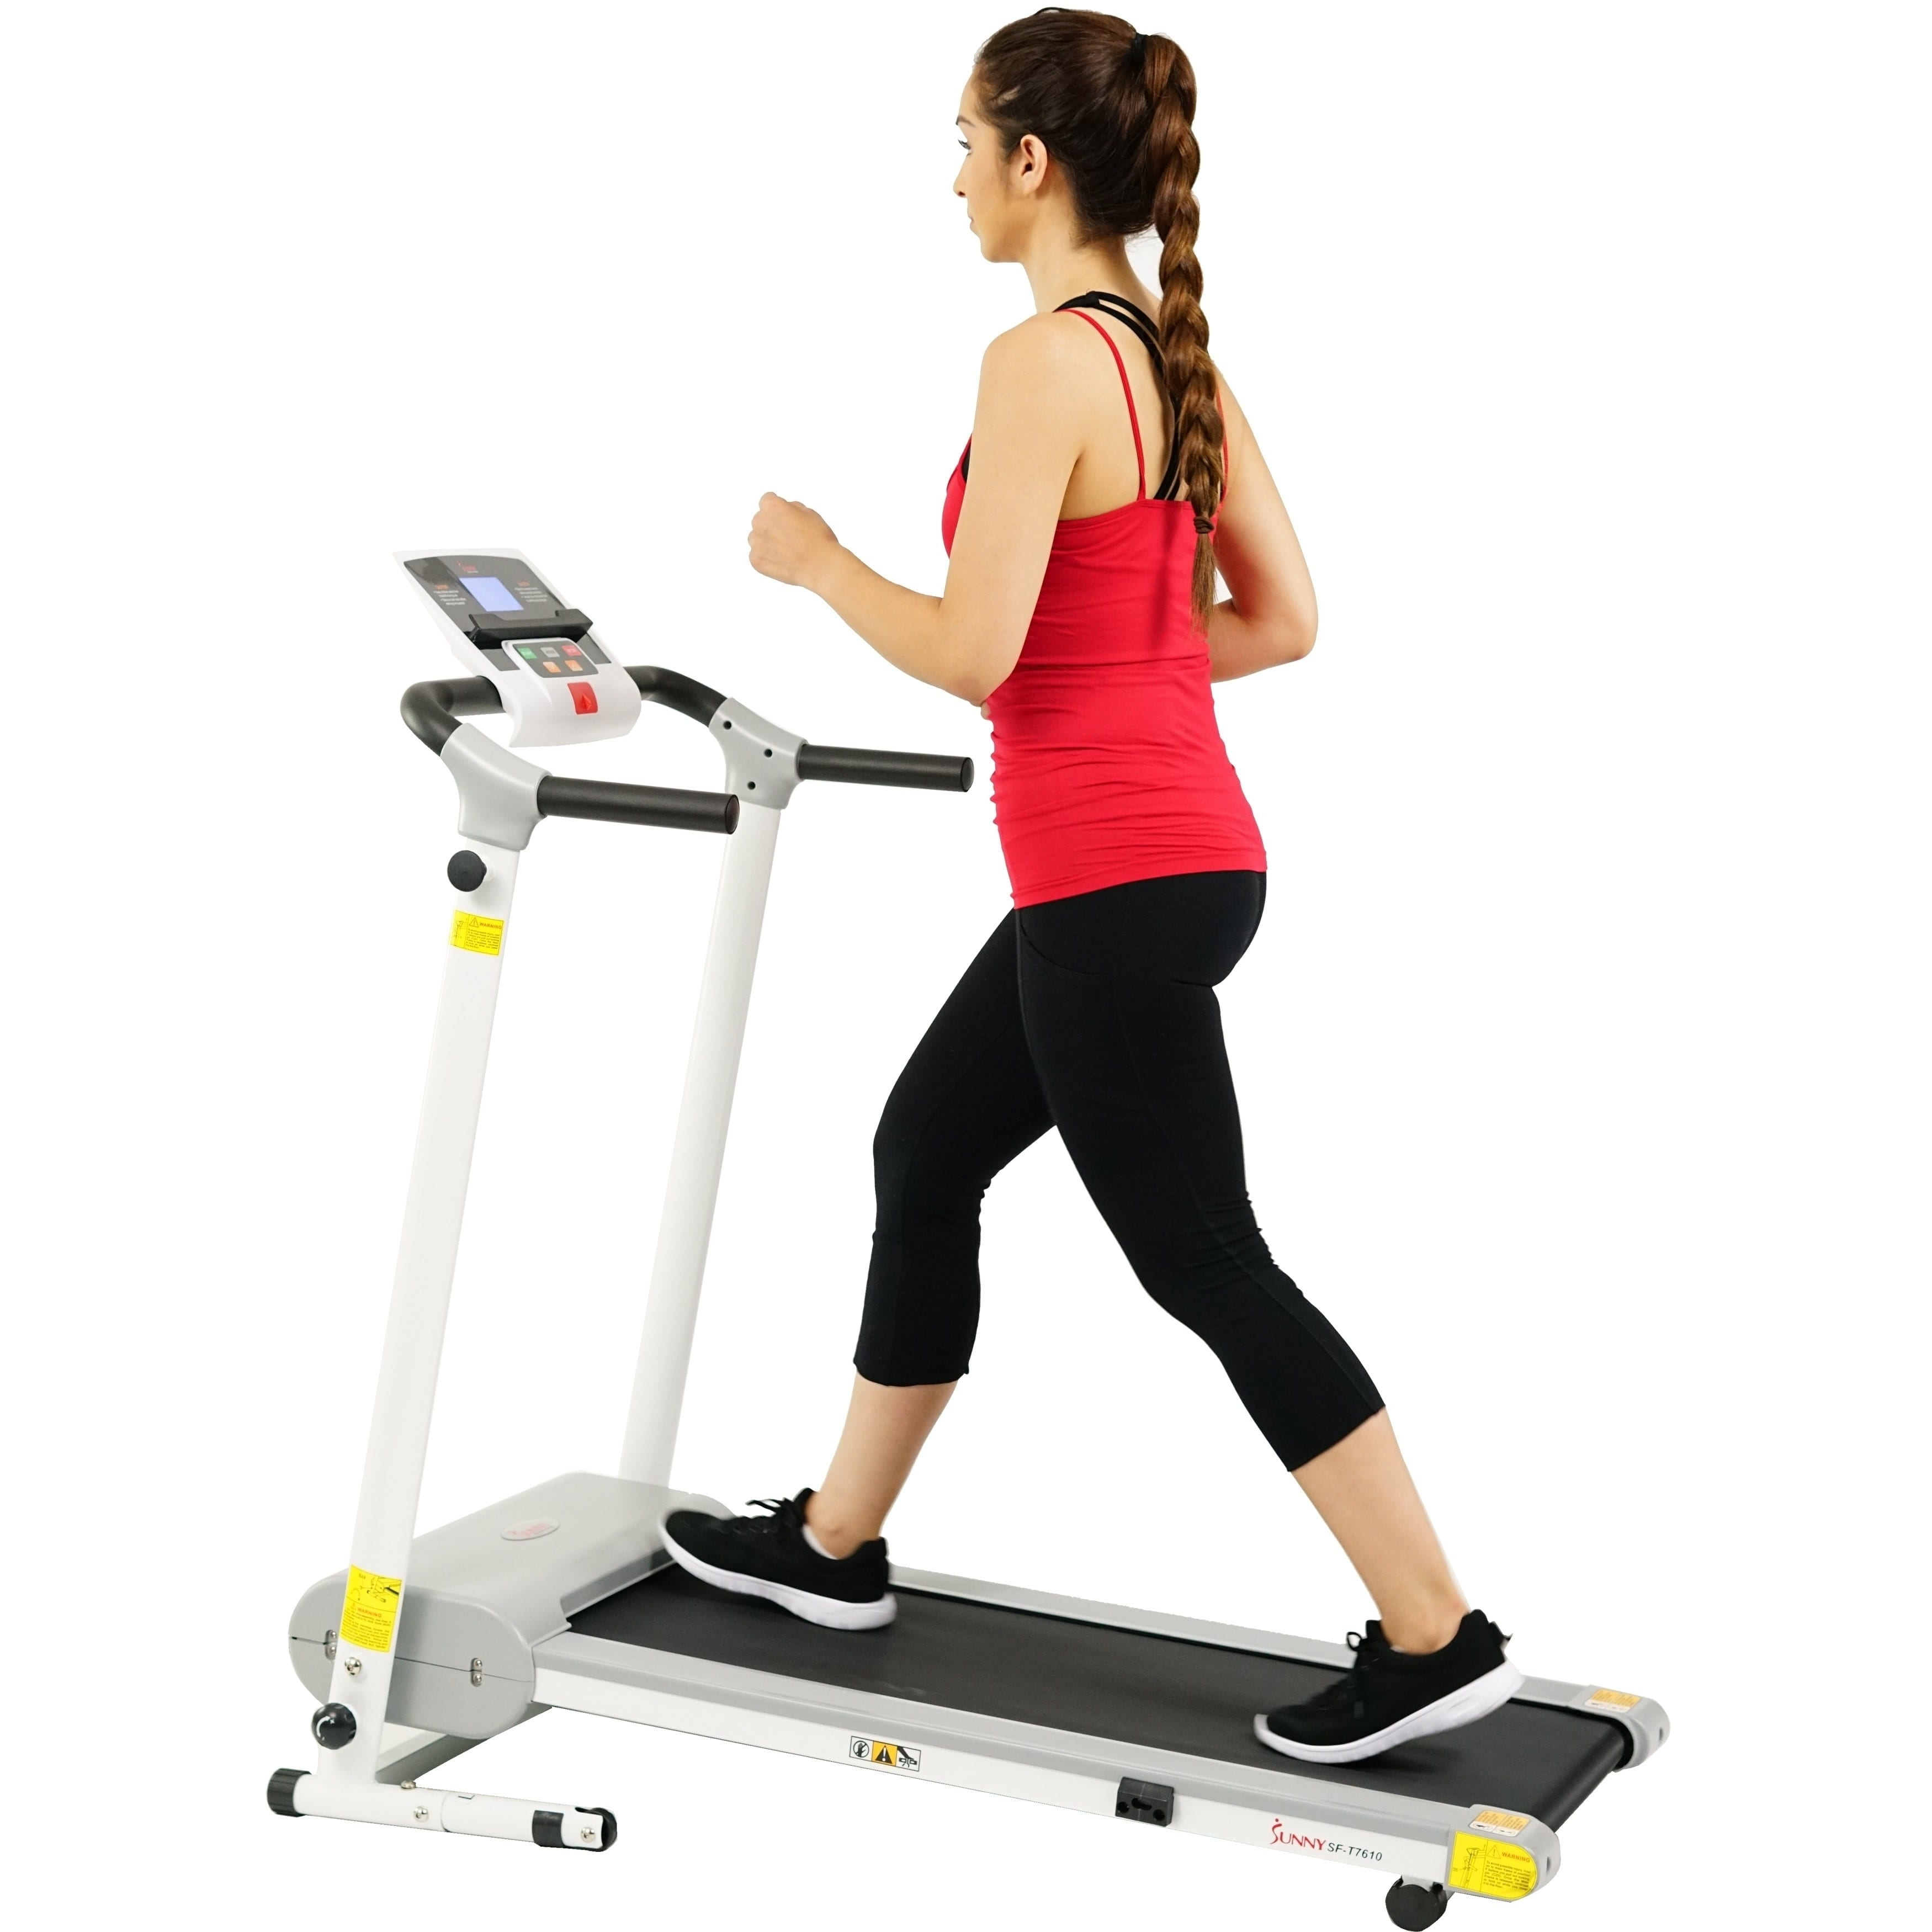 Sunny Health & Fitness SF-T7610 Motorized Folding Treadmill Machine